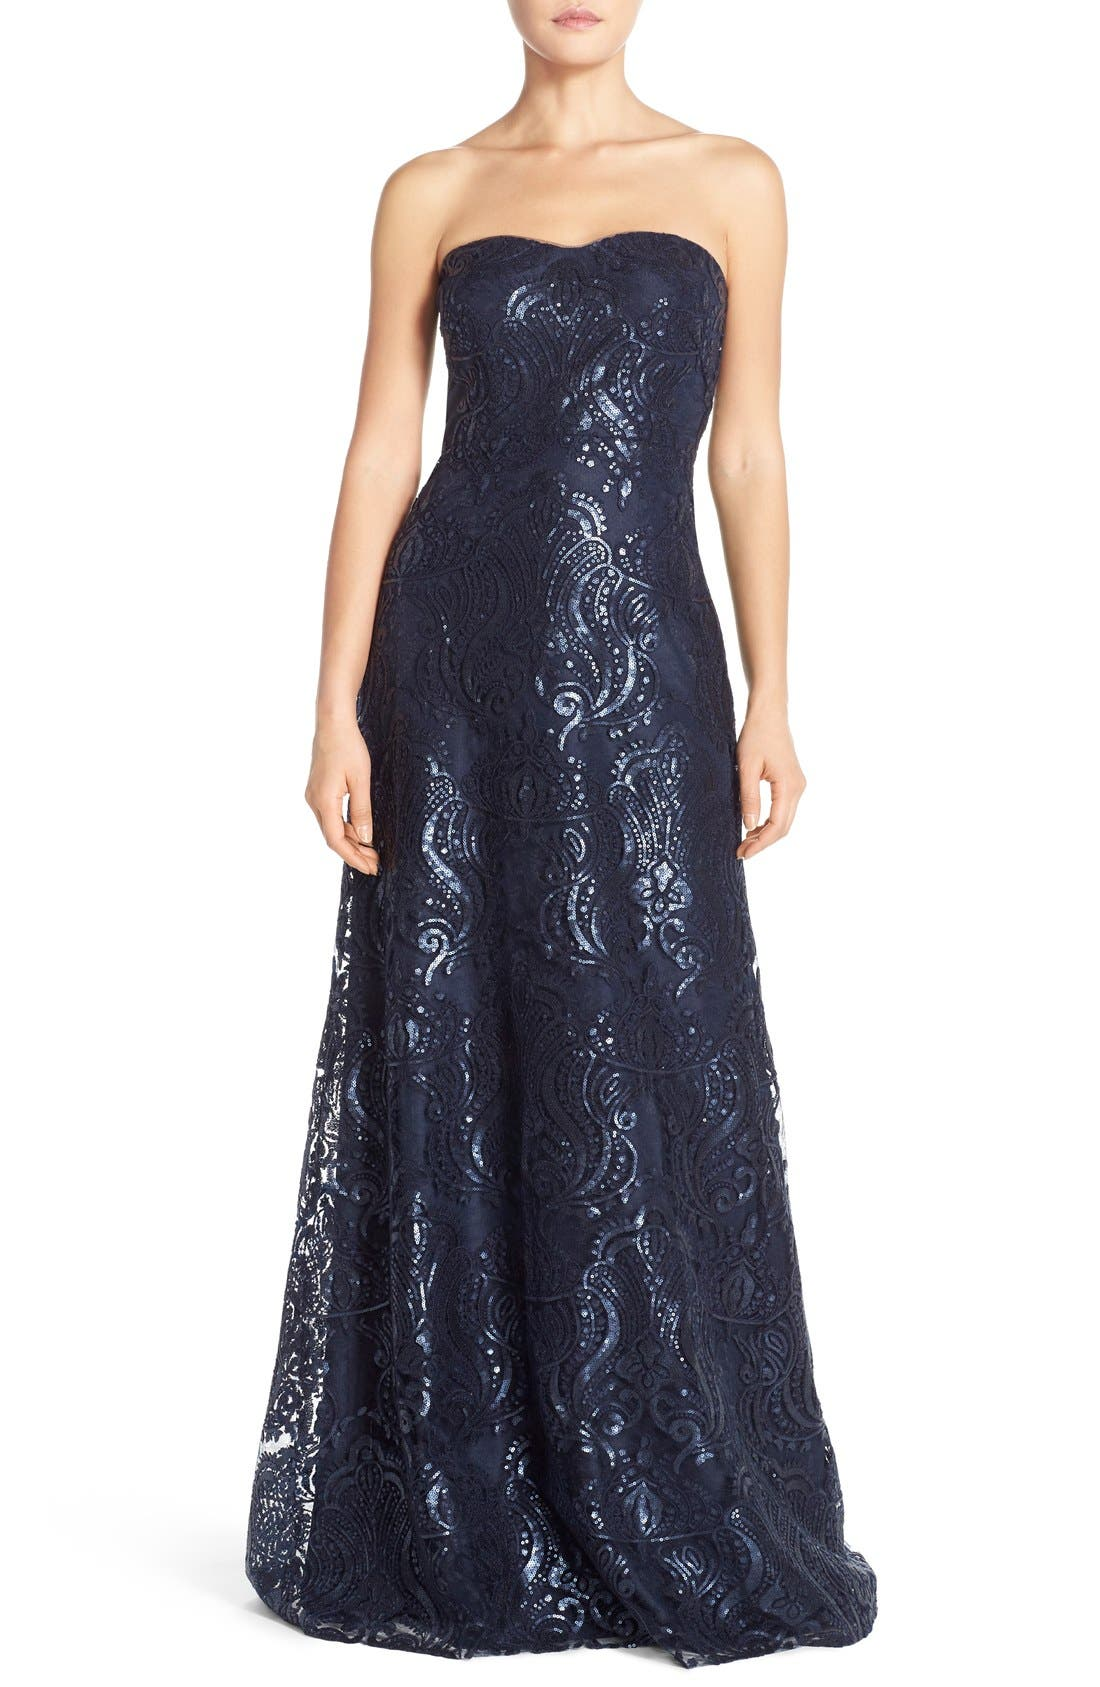 Sadie Sequin Lace Strapless A-Line Gown,                         Main,                         color, 410